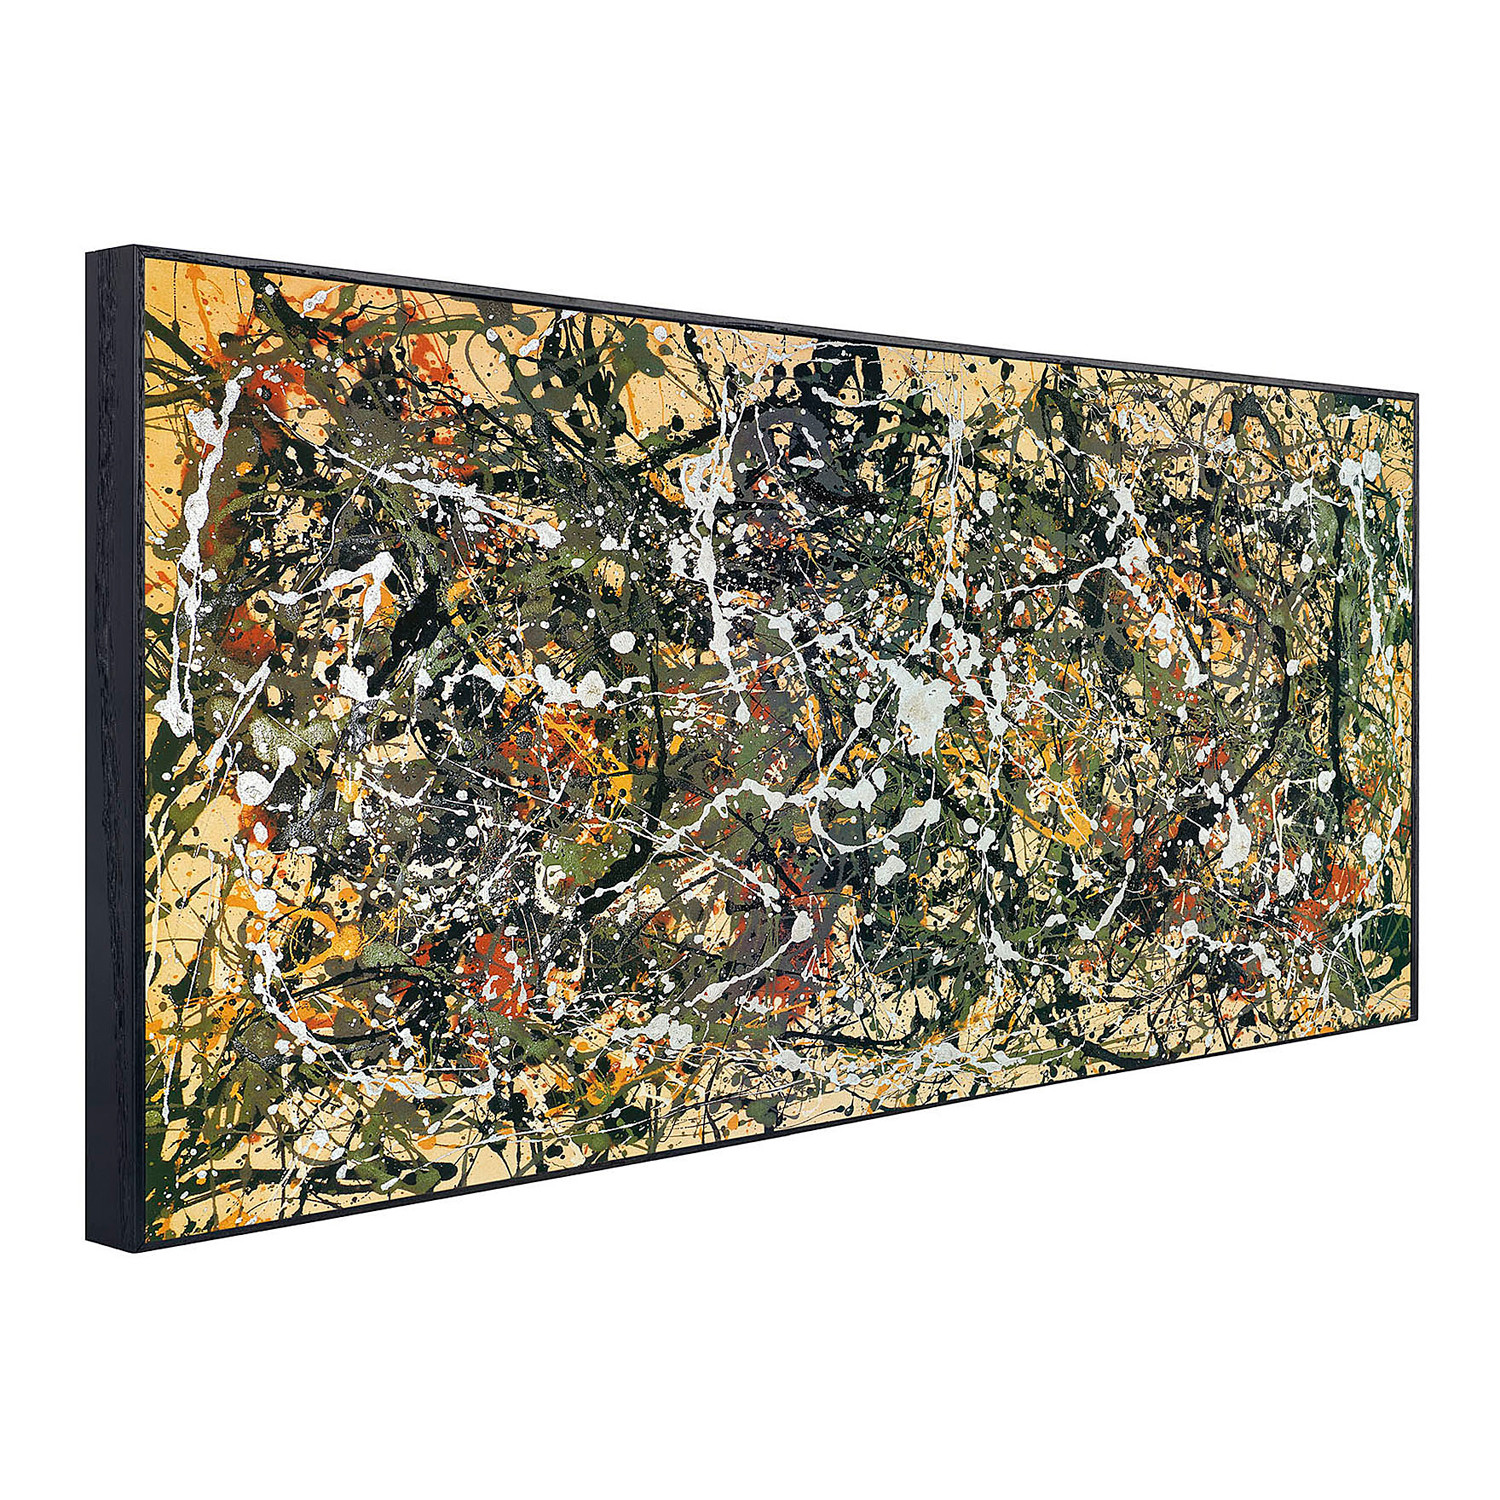 4 falten methode jackson pollock trailer wire diagram 7 pin number 8 1949 touch of modern